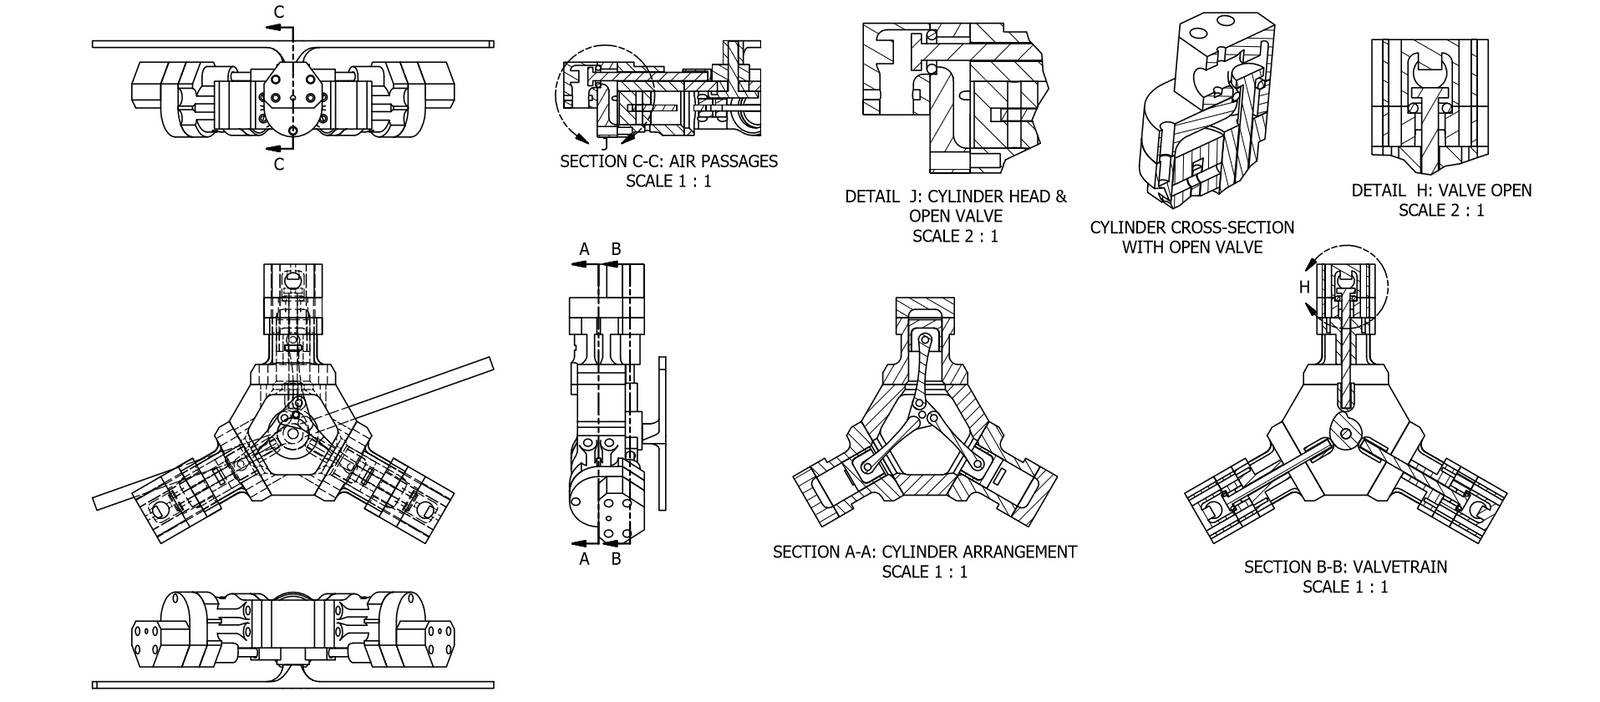 Radial Engine Diagram - Wiring Diagrams on